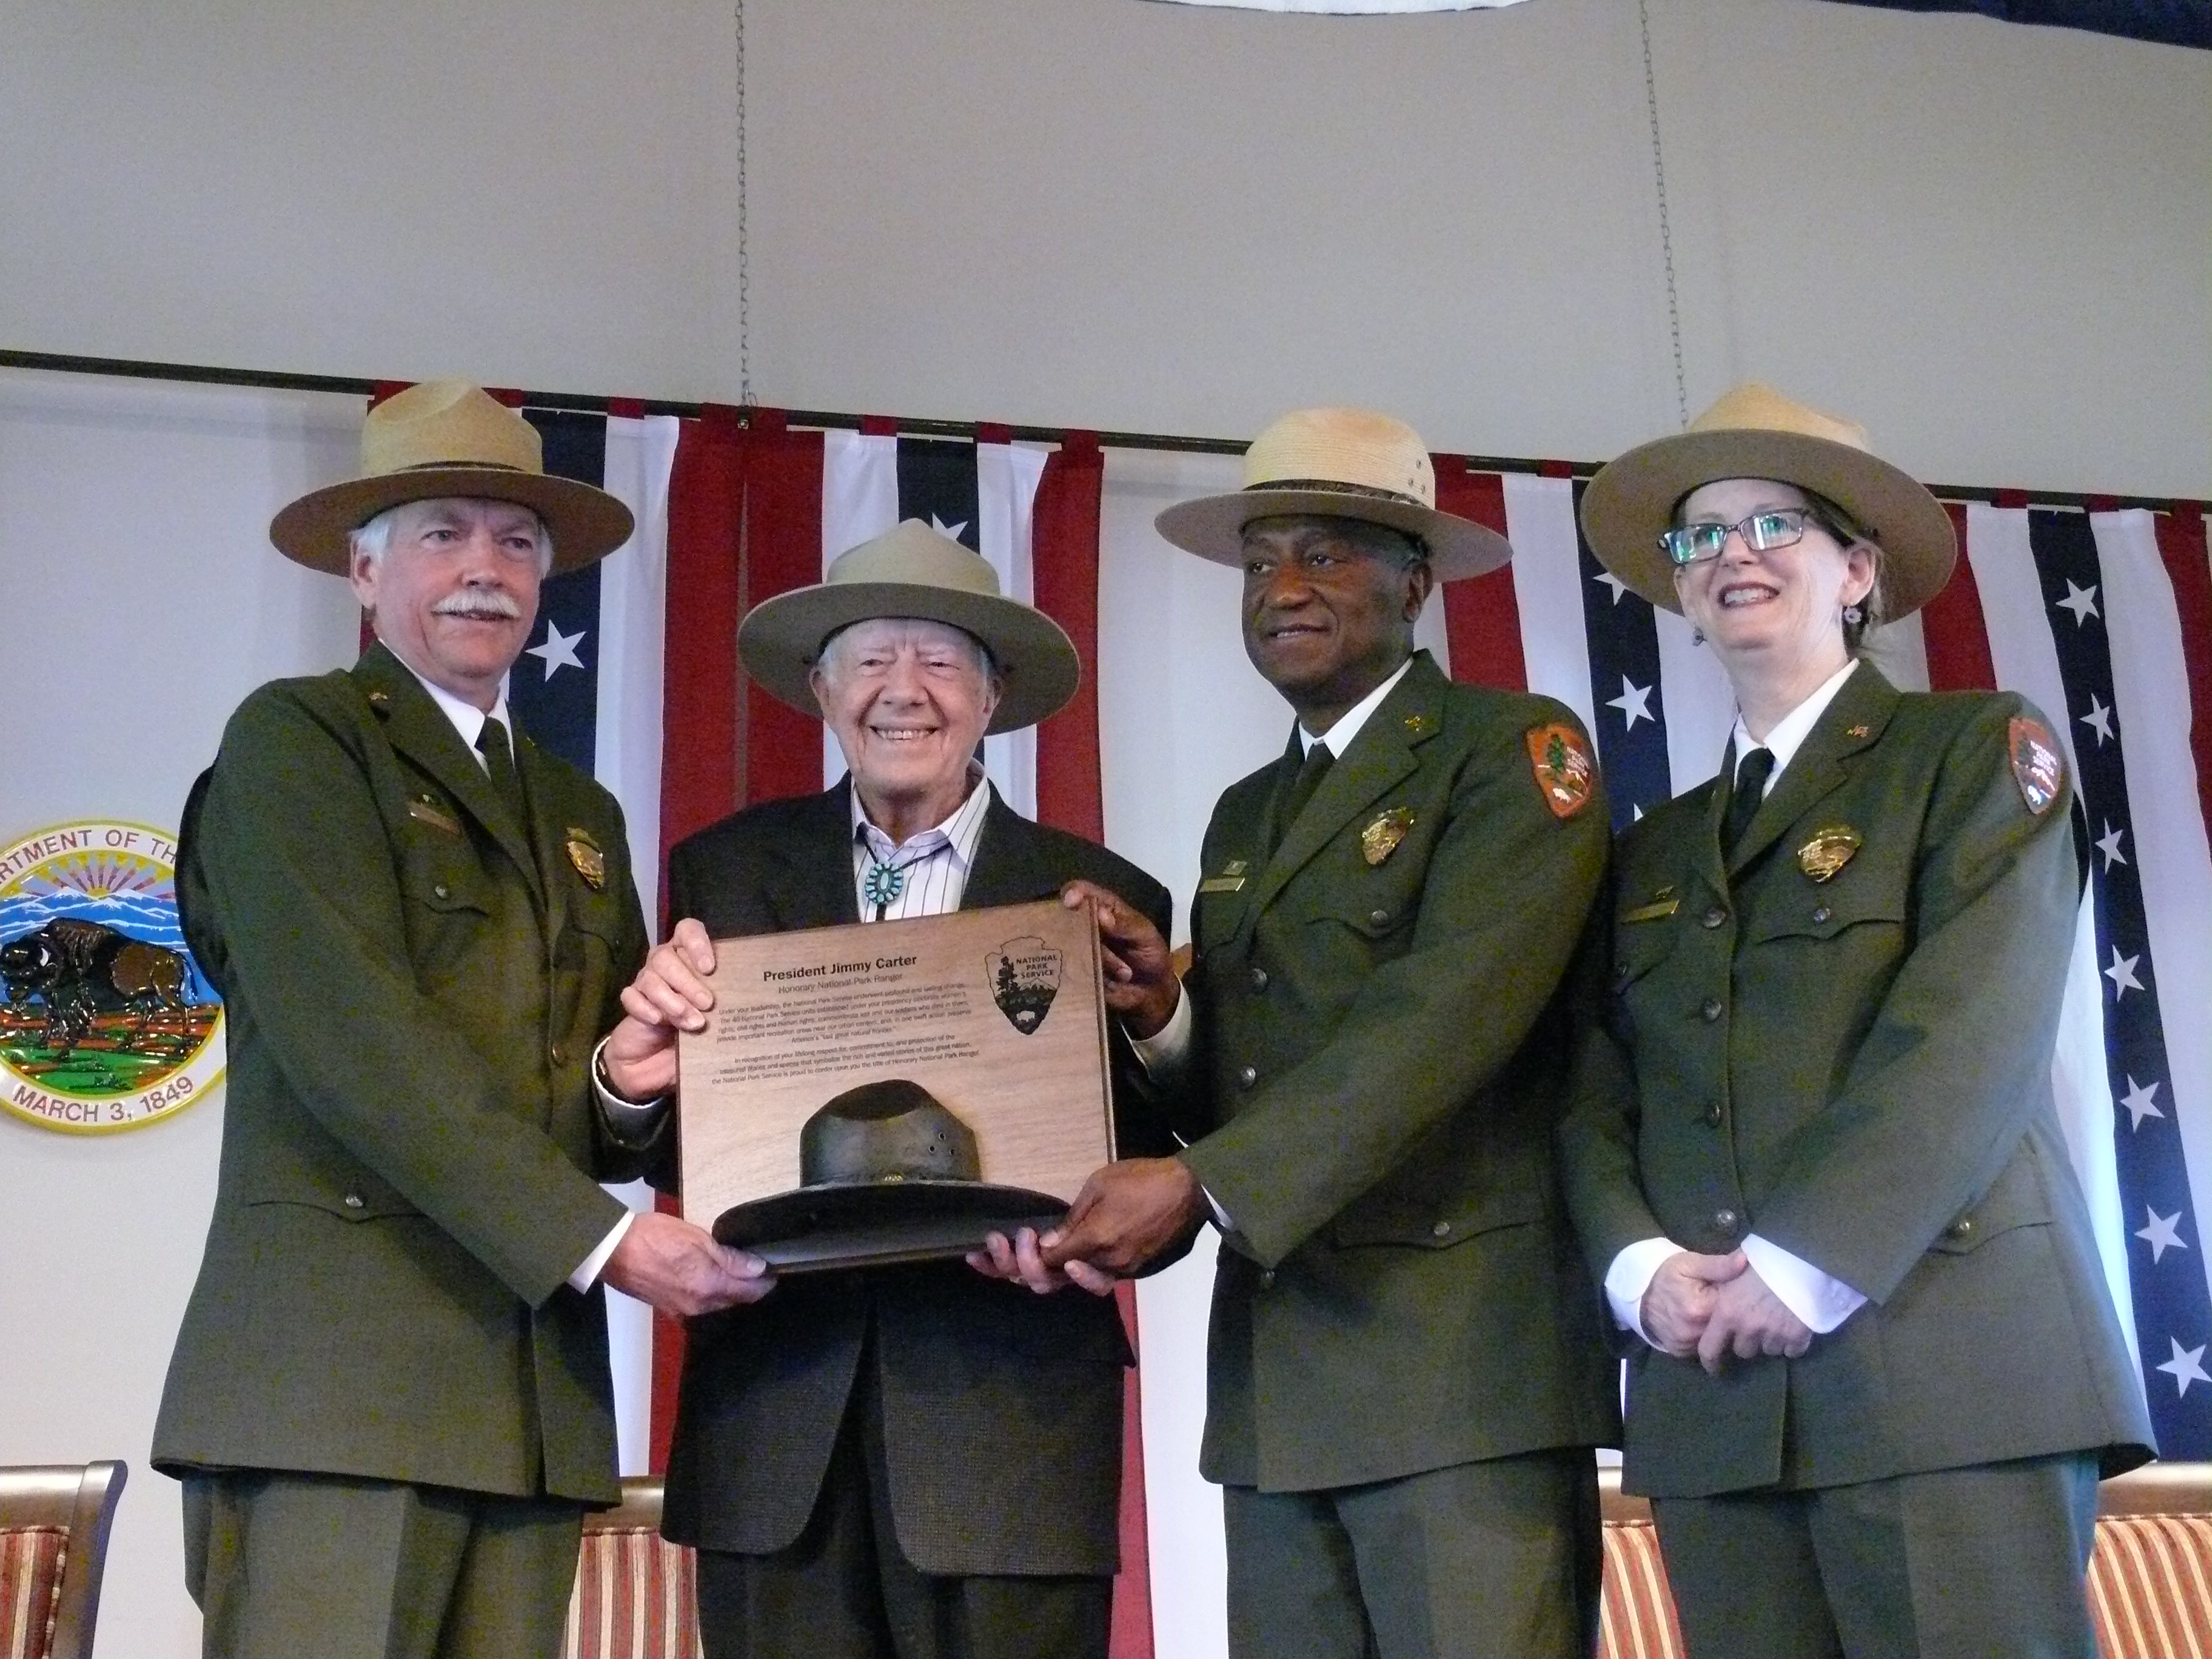 National Park Service Director Jonathan B. Jarvis, Former President Jimmy Carter, NPS Southeast Region Director Stan Austin and Jimmy Carter National Historic Site Superintendent Barbara Judy